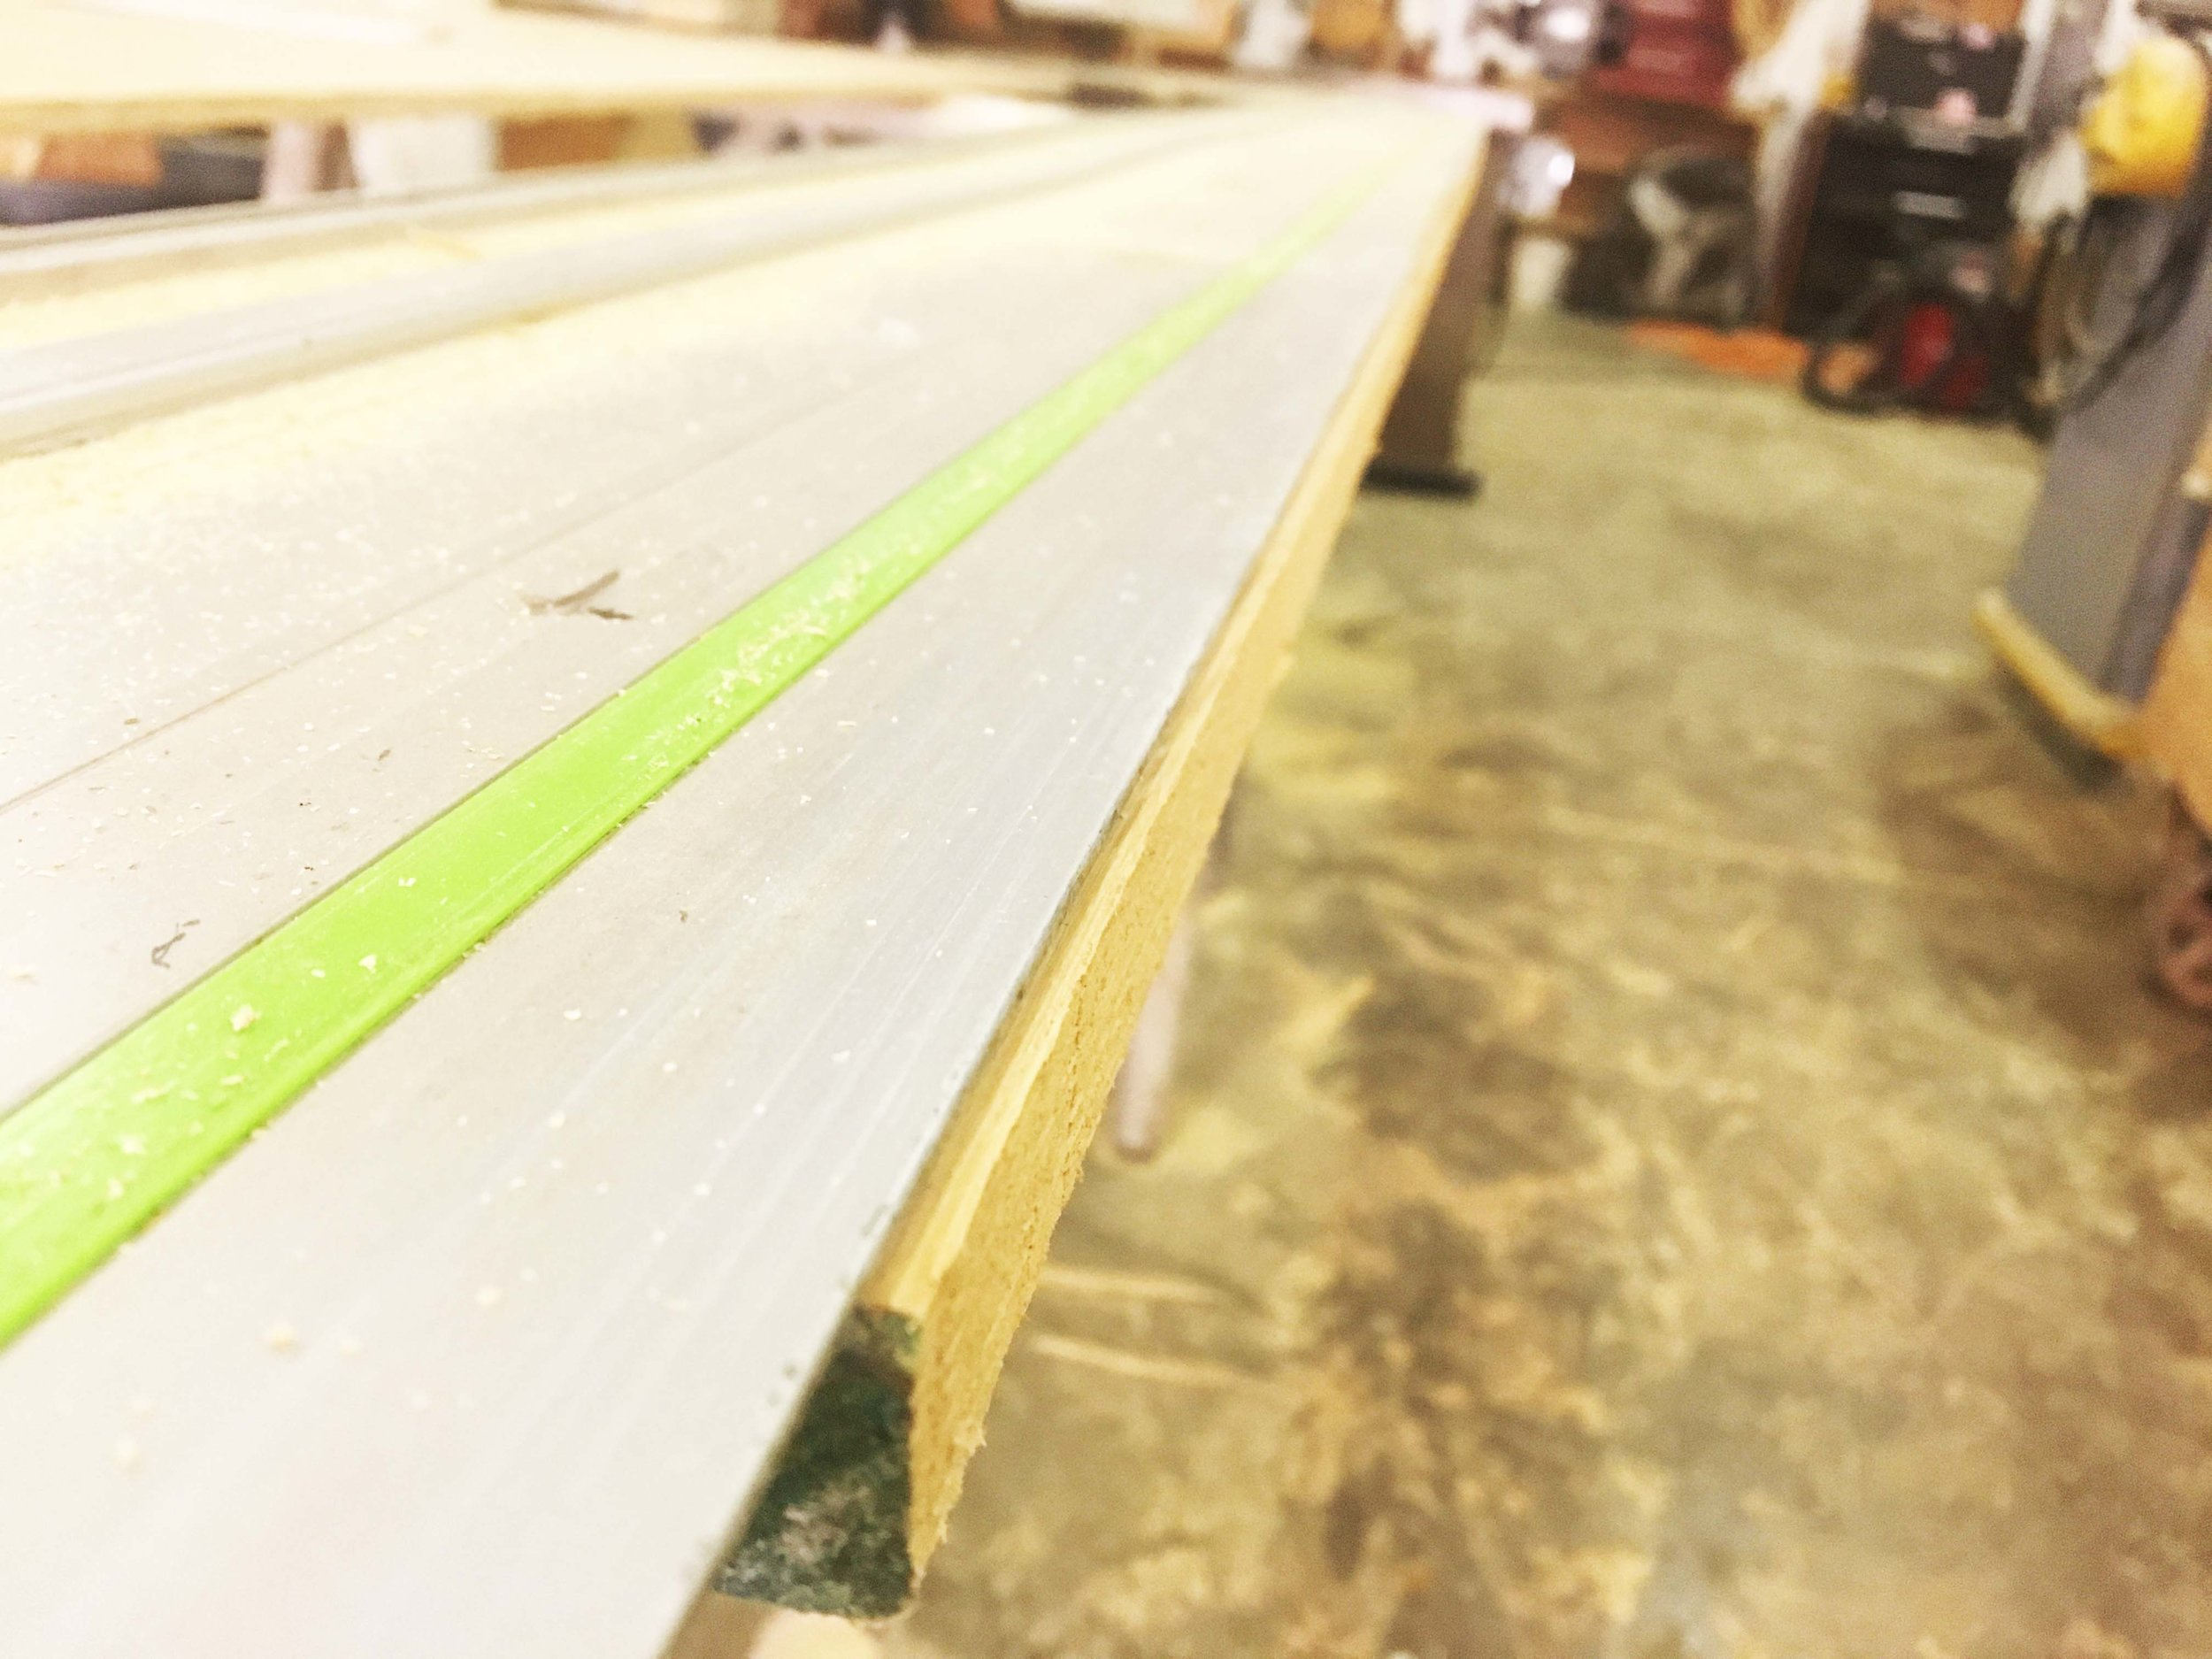 Before the Festool track saw, a raw edge